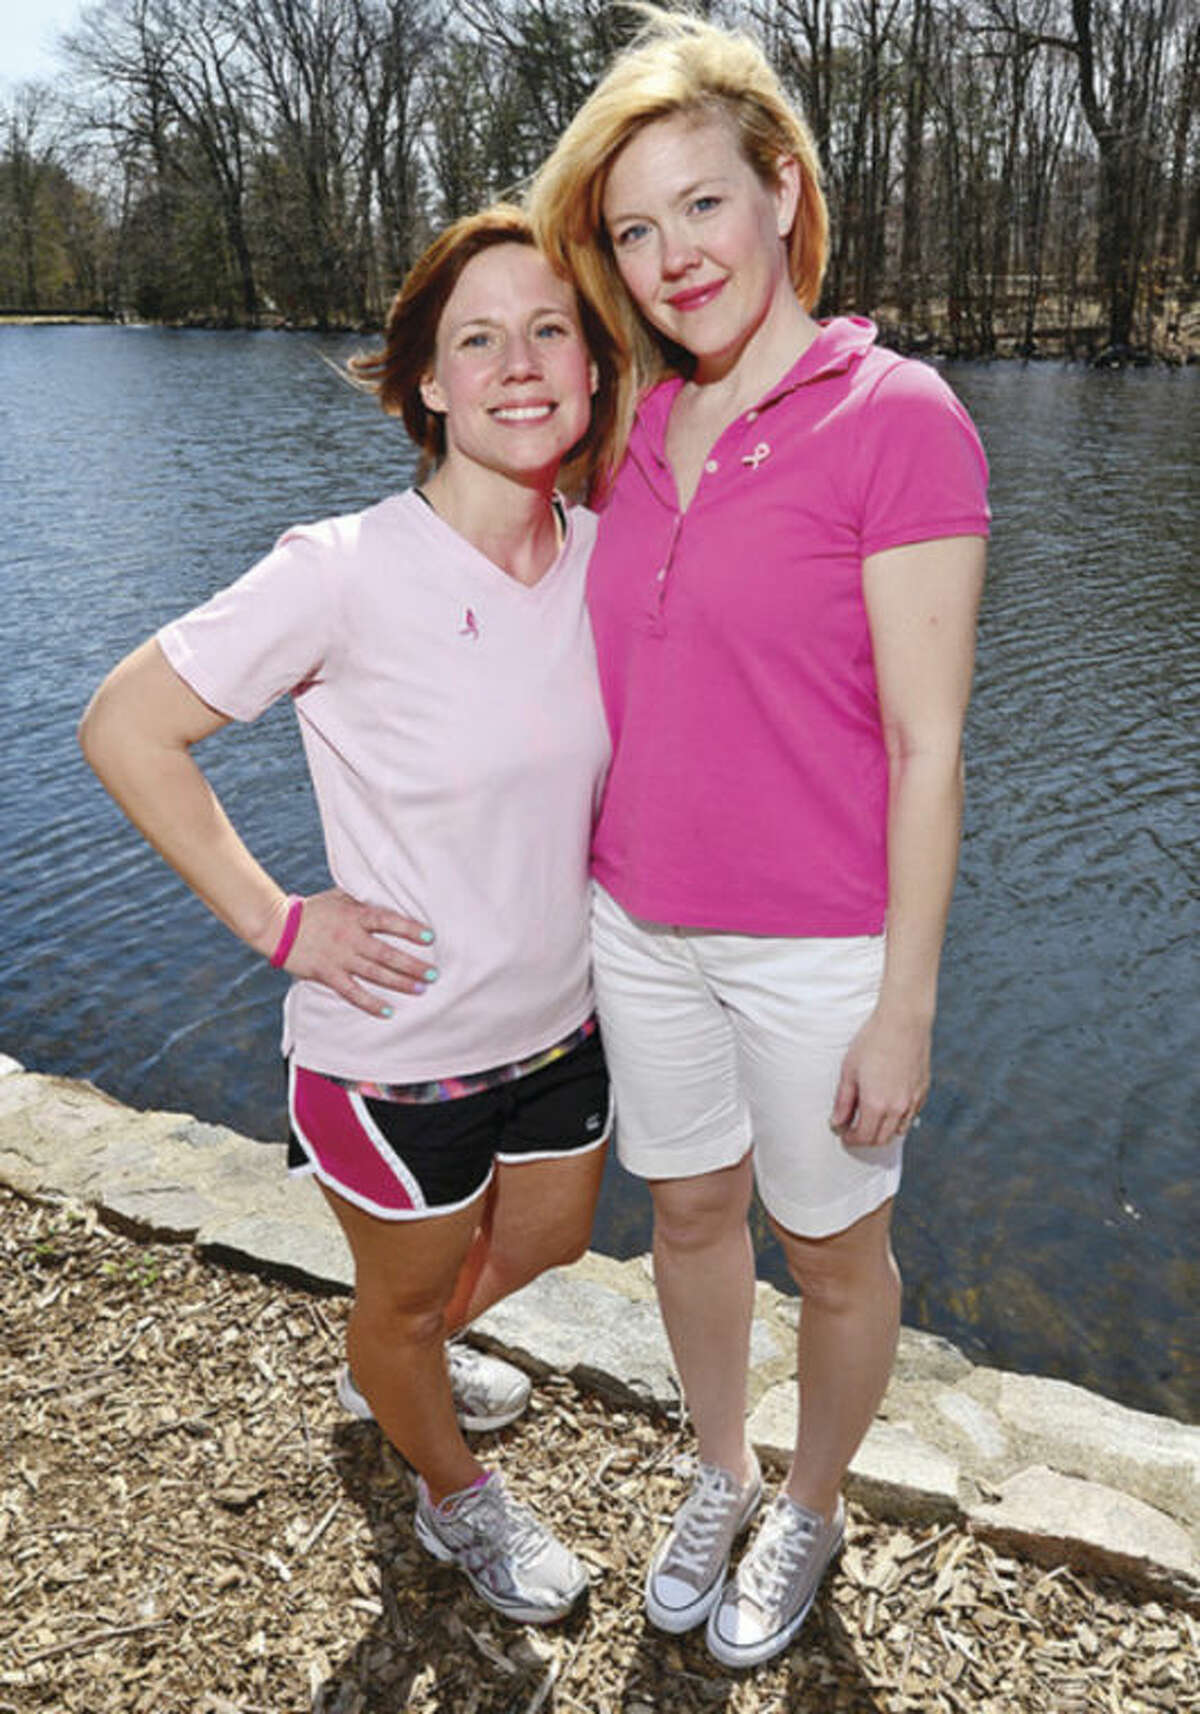 Hour photo / Erik Trautmann Stamford residents Kelley Lombardo and Lauren Rhodes have been named Town Ambassadors of Stamford for the Inaugural Komen Connecticut Race for the Cure on May 11 at the Sherwood Island State Park in Westport.